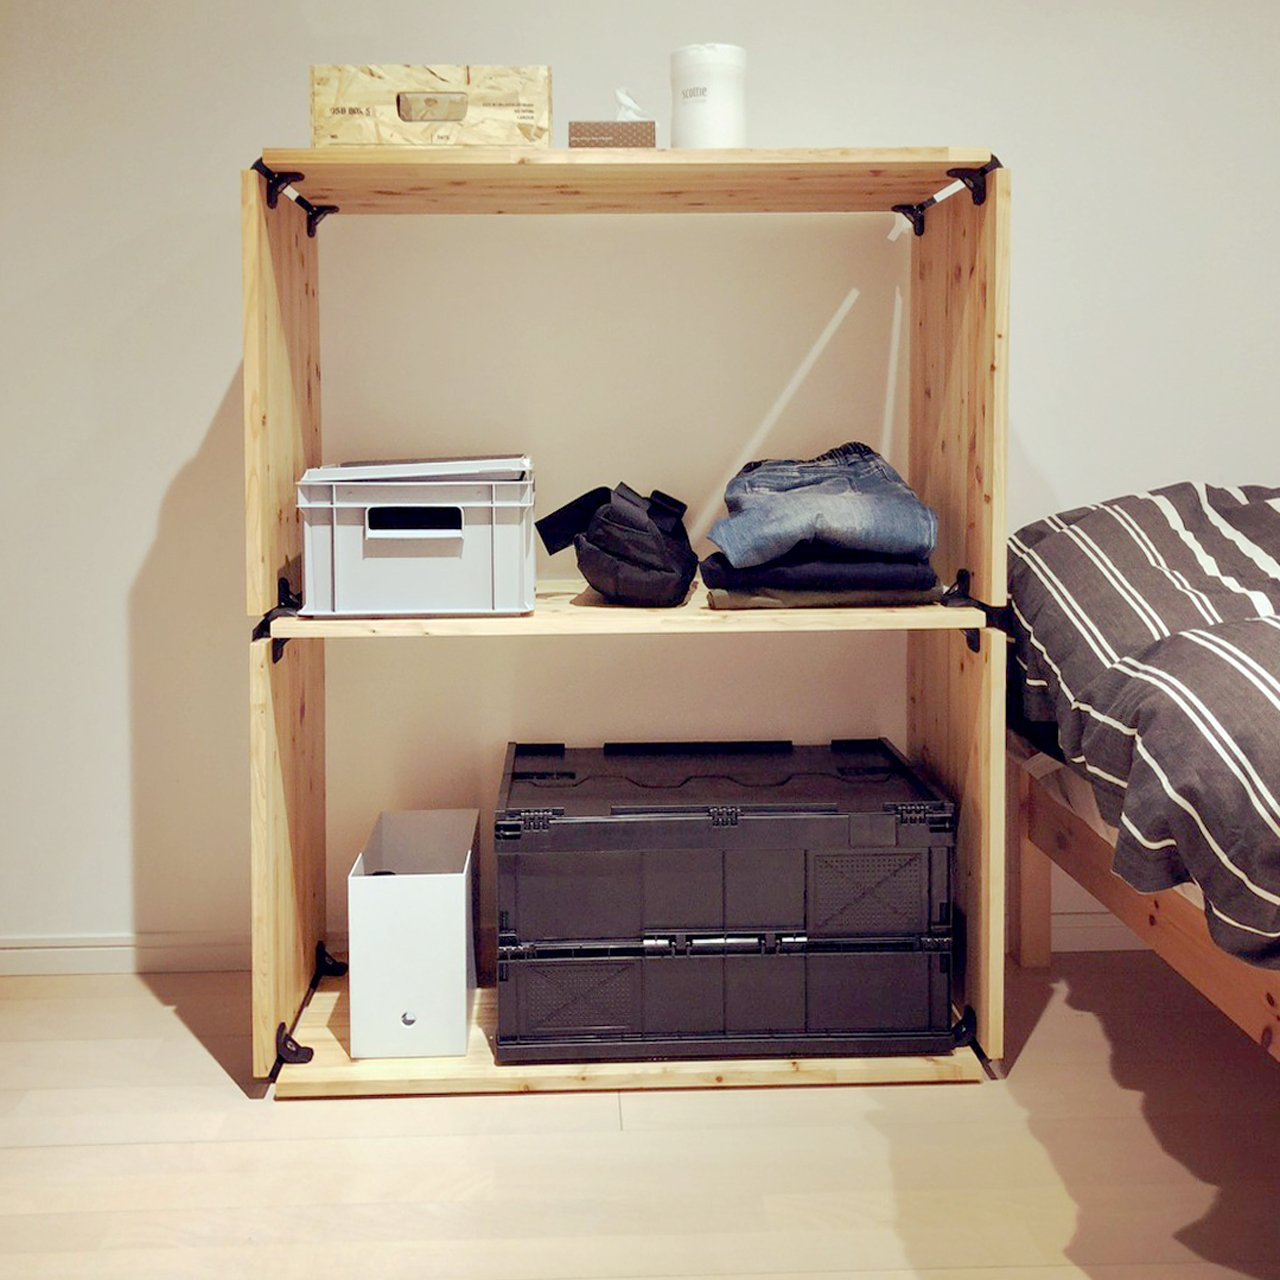 Playwood projects - Bedside solution